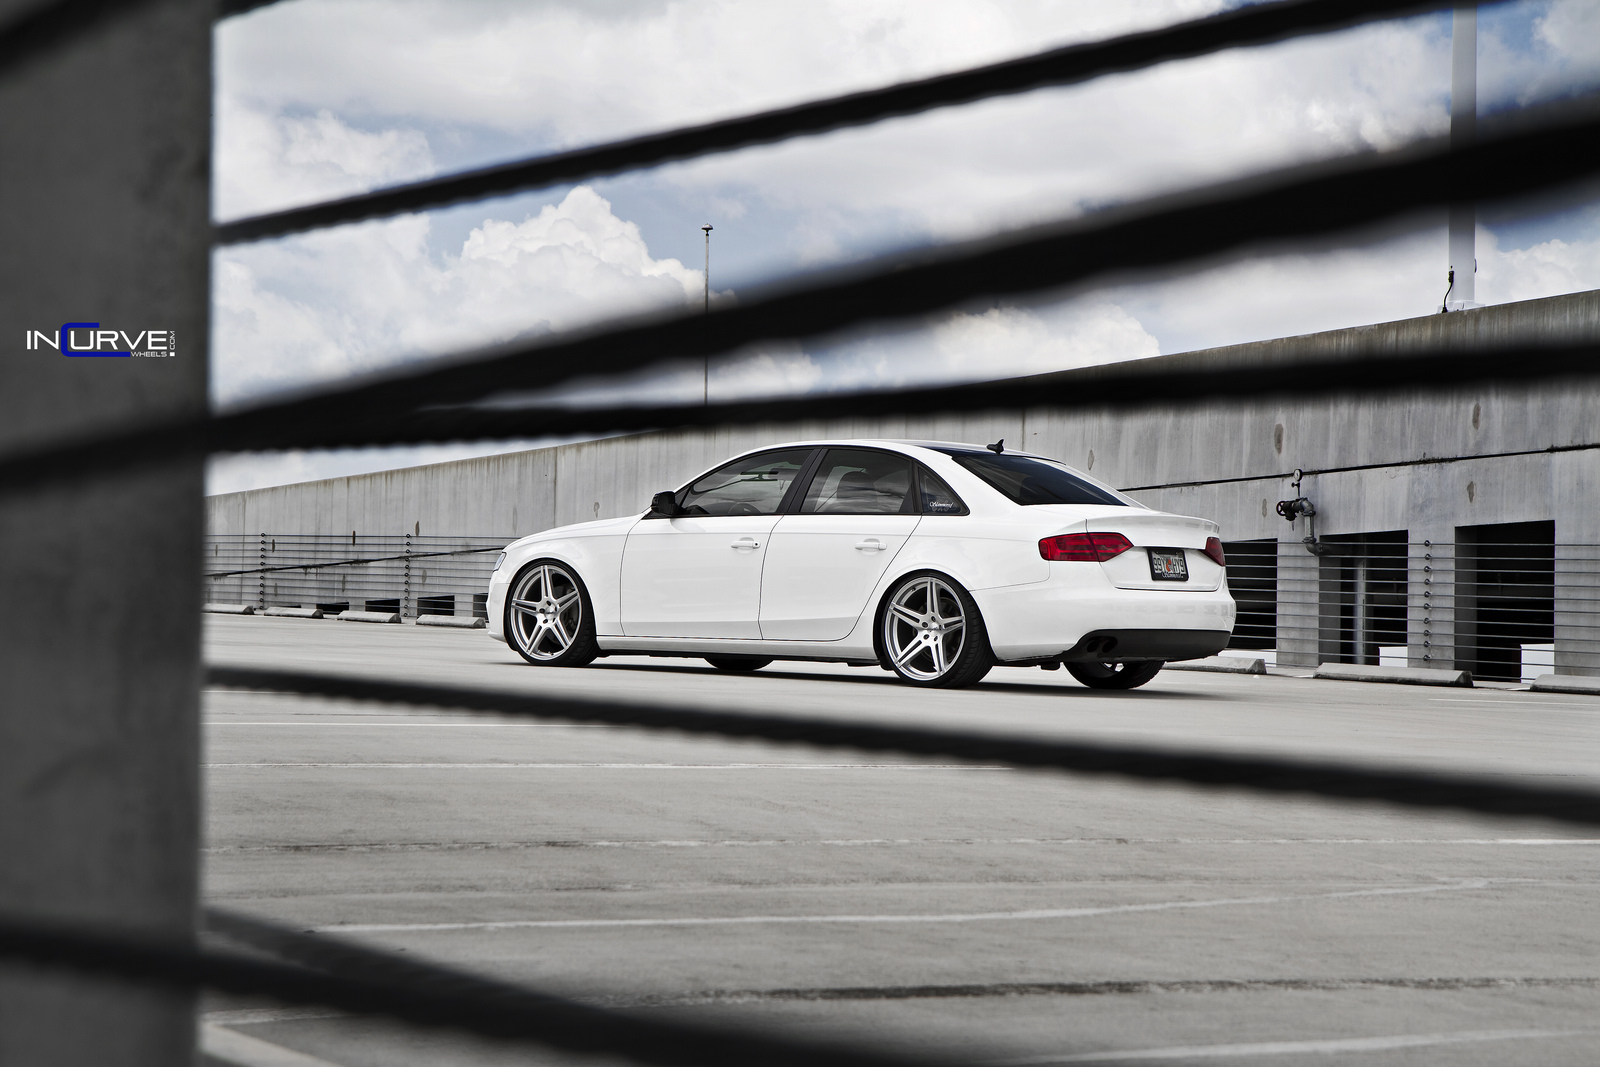 Incurve Wheels IC-S5 Silver on Audi A4